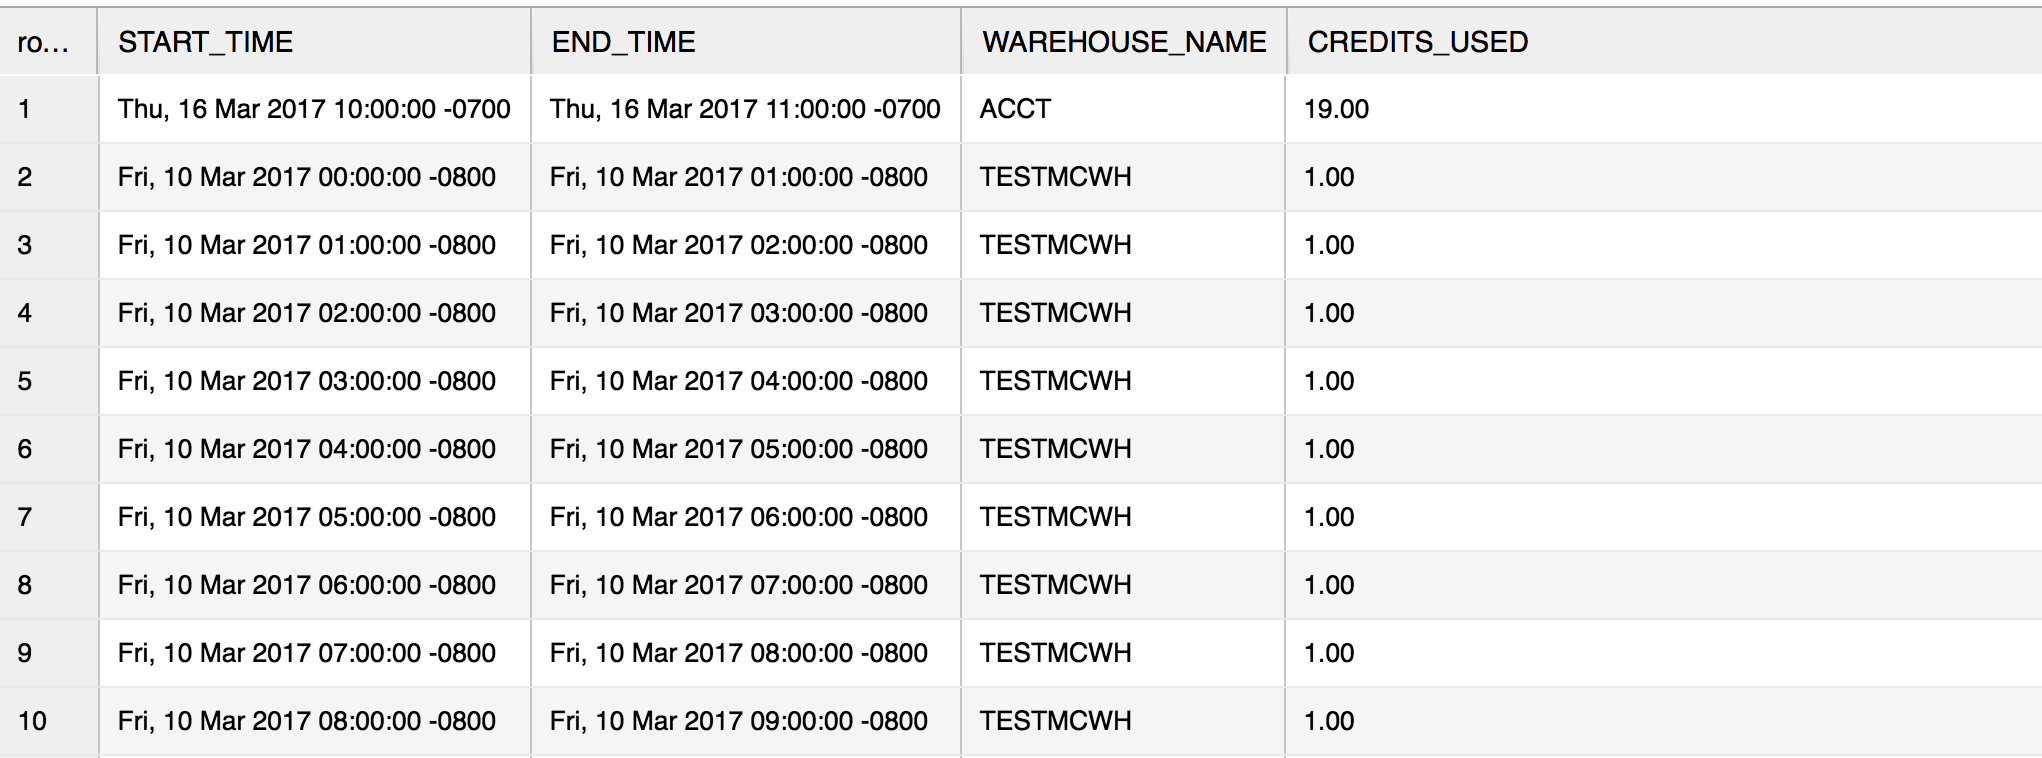 Looking at Warehouse Metering History